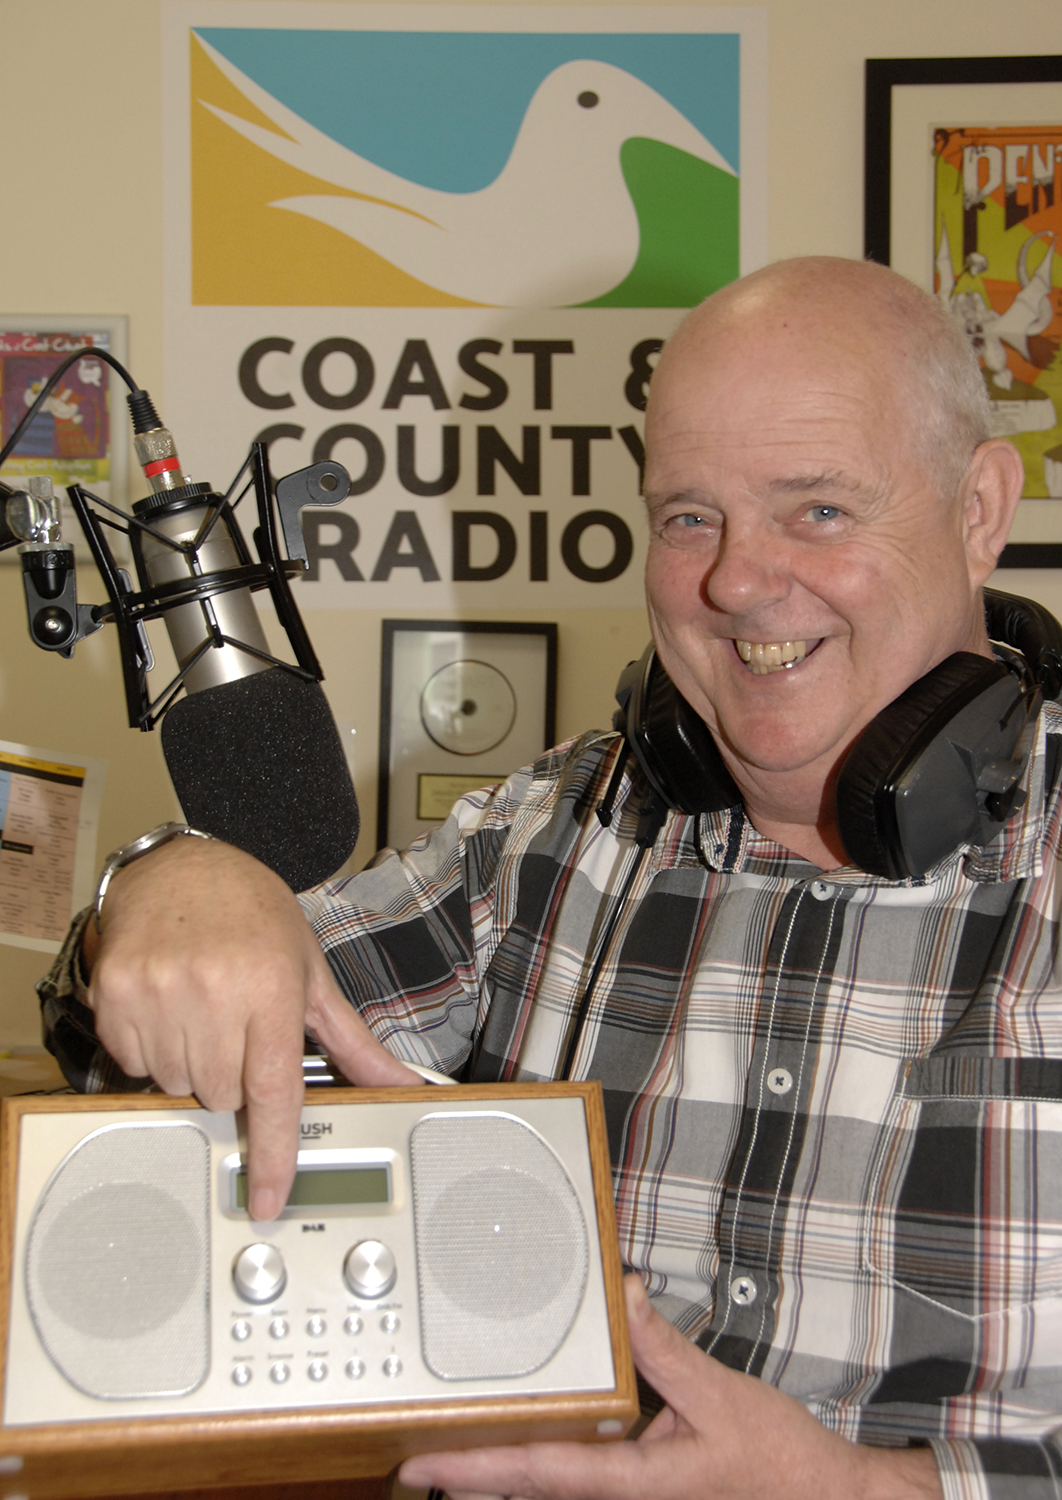 Coast and County managing director Dave MacGregor or a colleague will show you how to tune your digital radio (to order photos ring 353597)